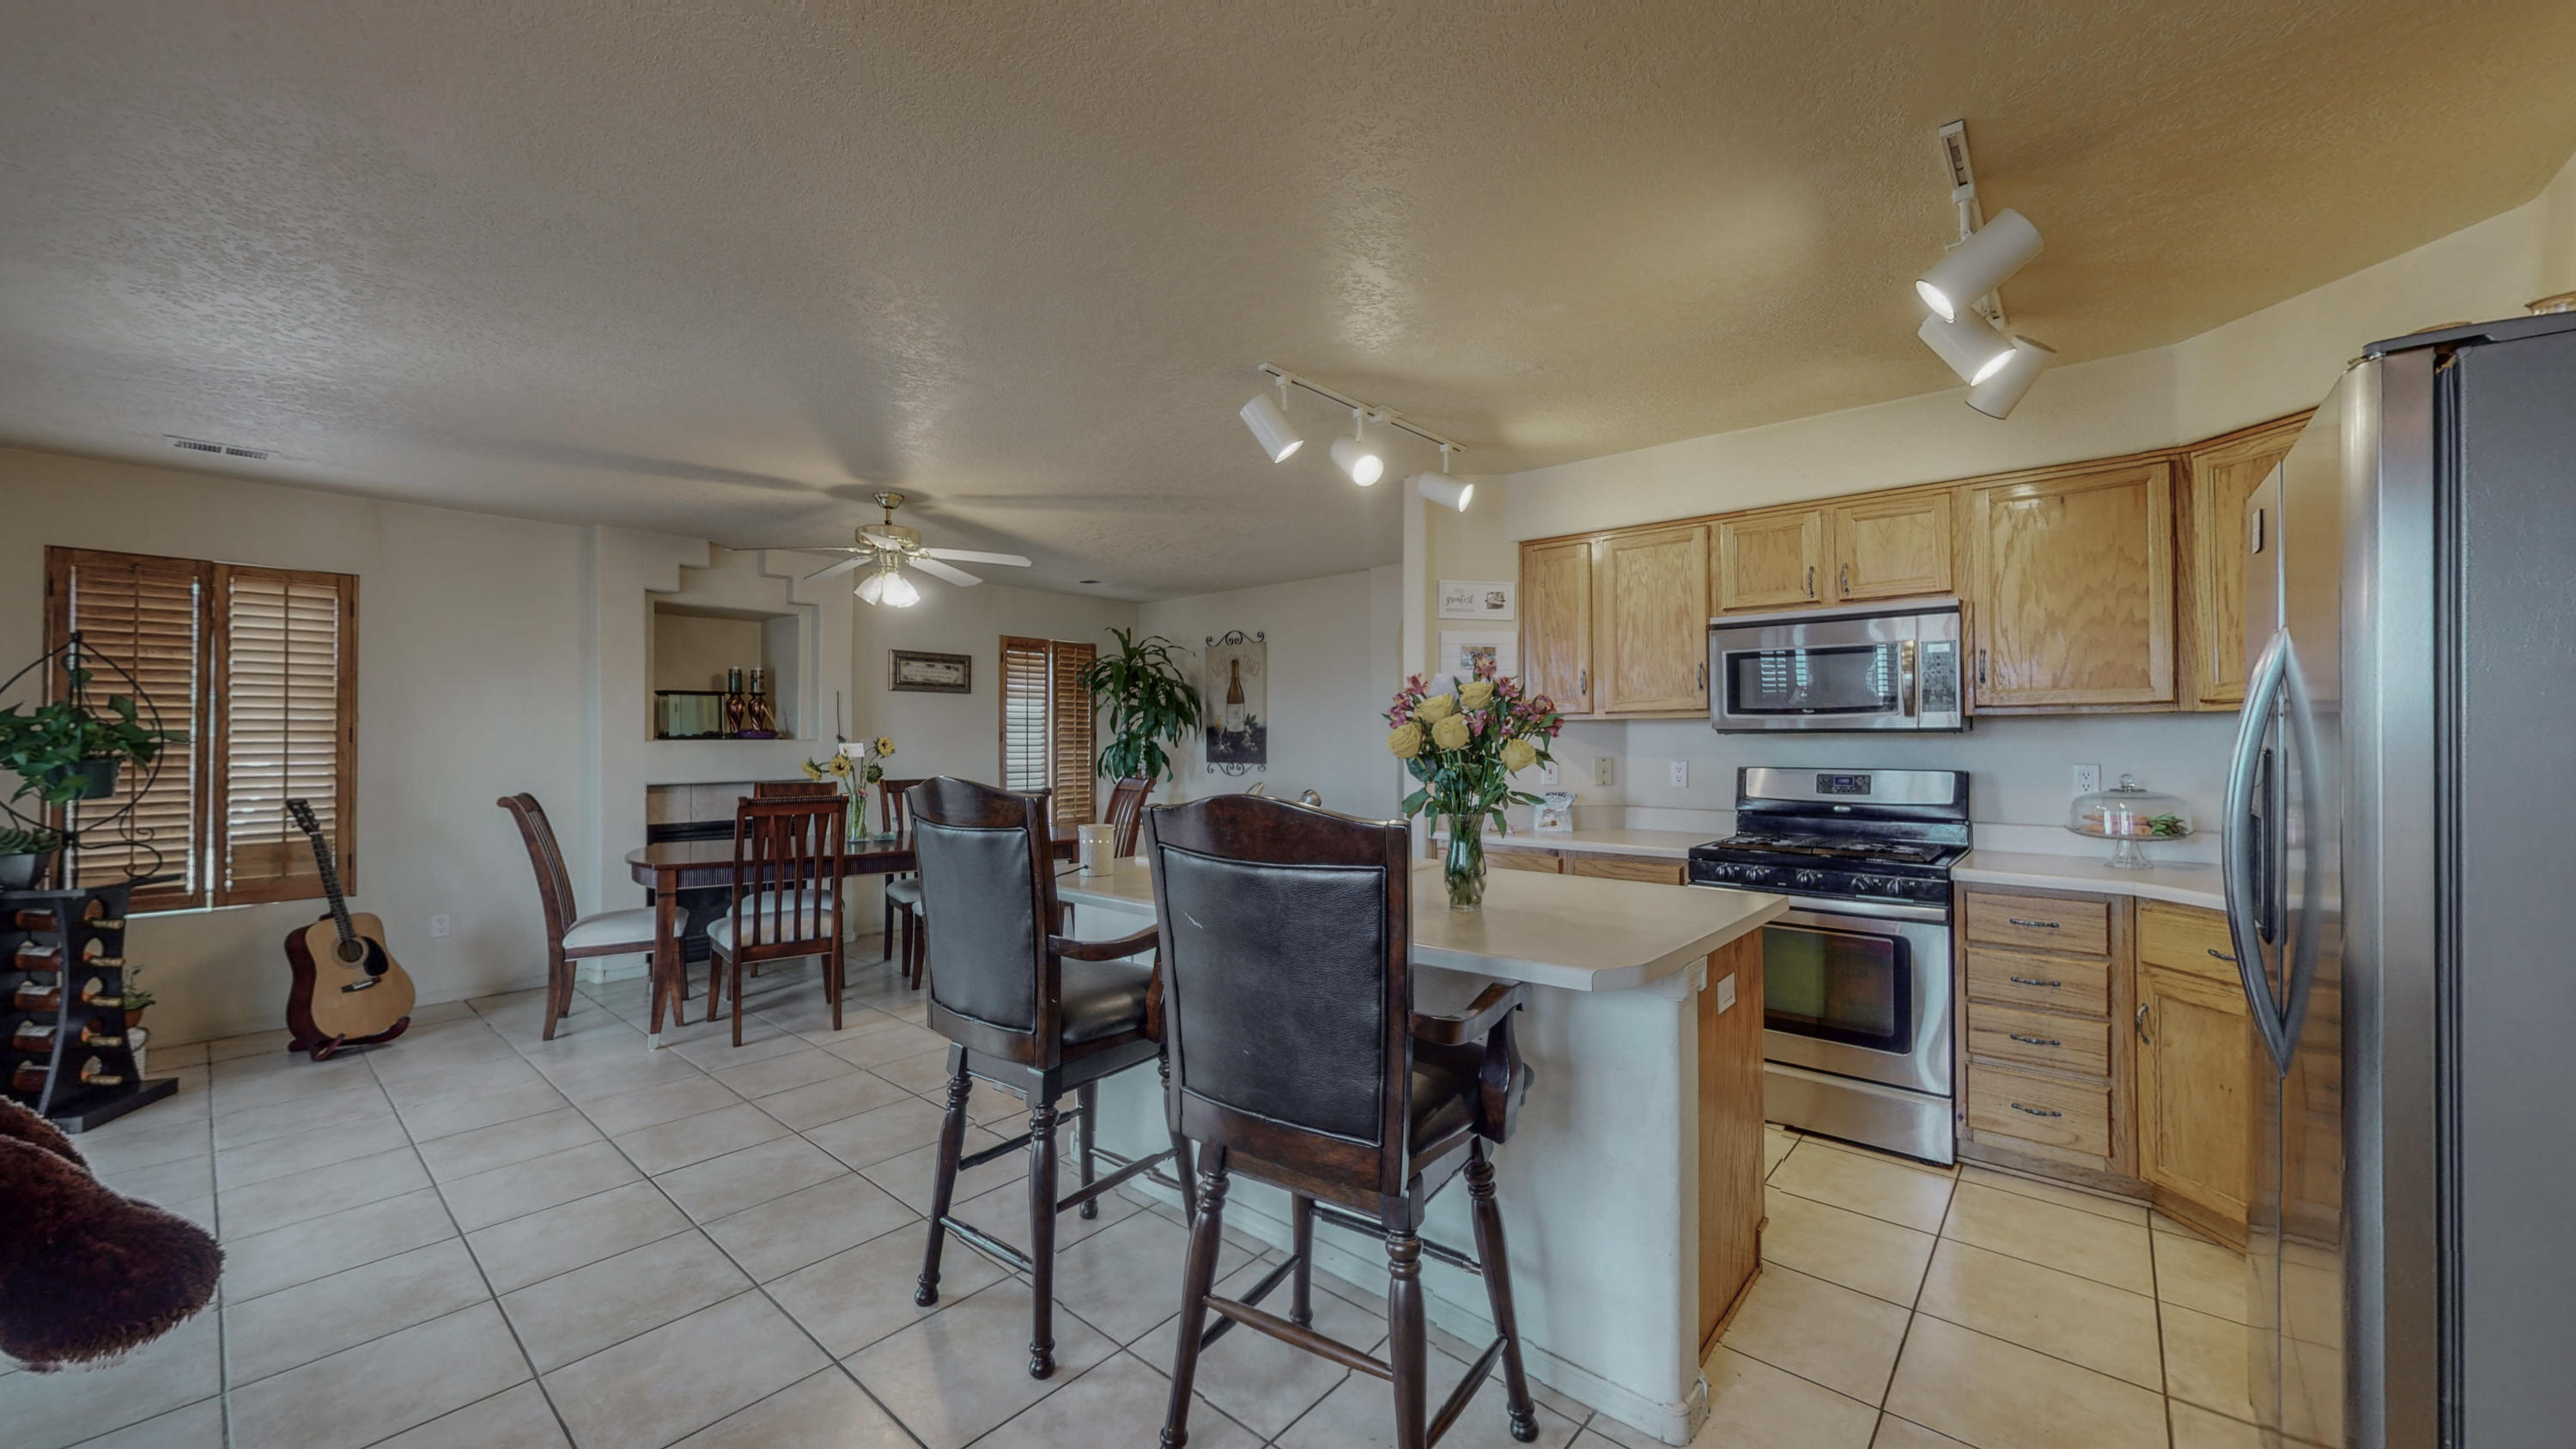 This beautiful home has been well maintained and cared for and it shows, it has beautiful views from the upstairs balcony, big spacious backyard with very low maintenance, refrigerated air, wood shutter, great location conveniently located near tons of restaurants and shopping. Schedule a tour you won't want to miss this one.